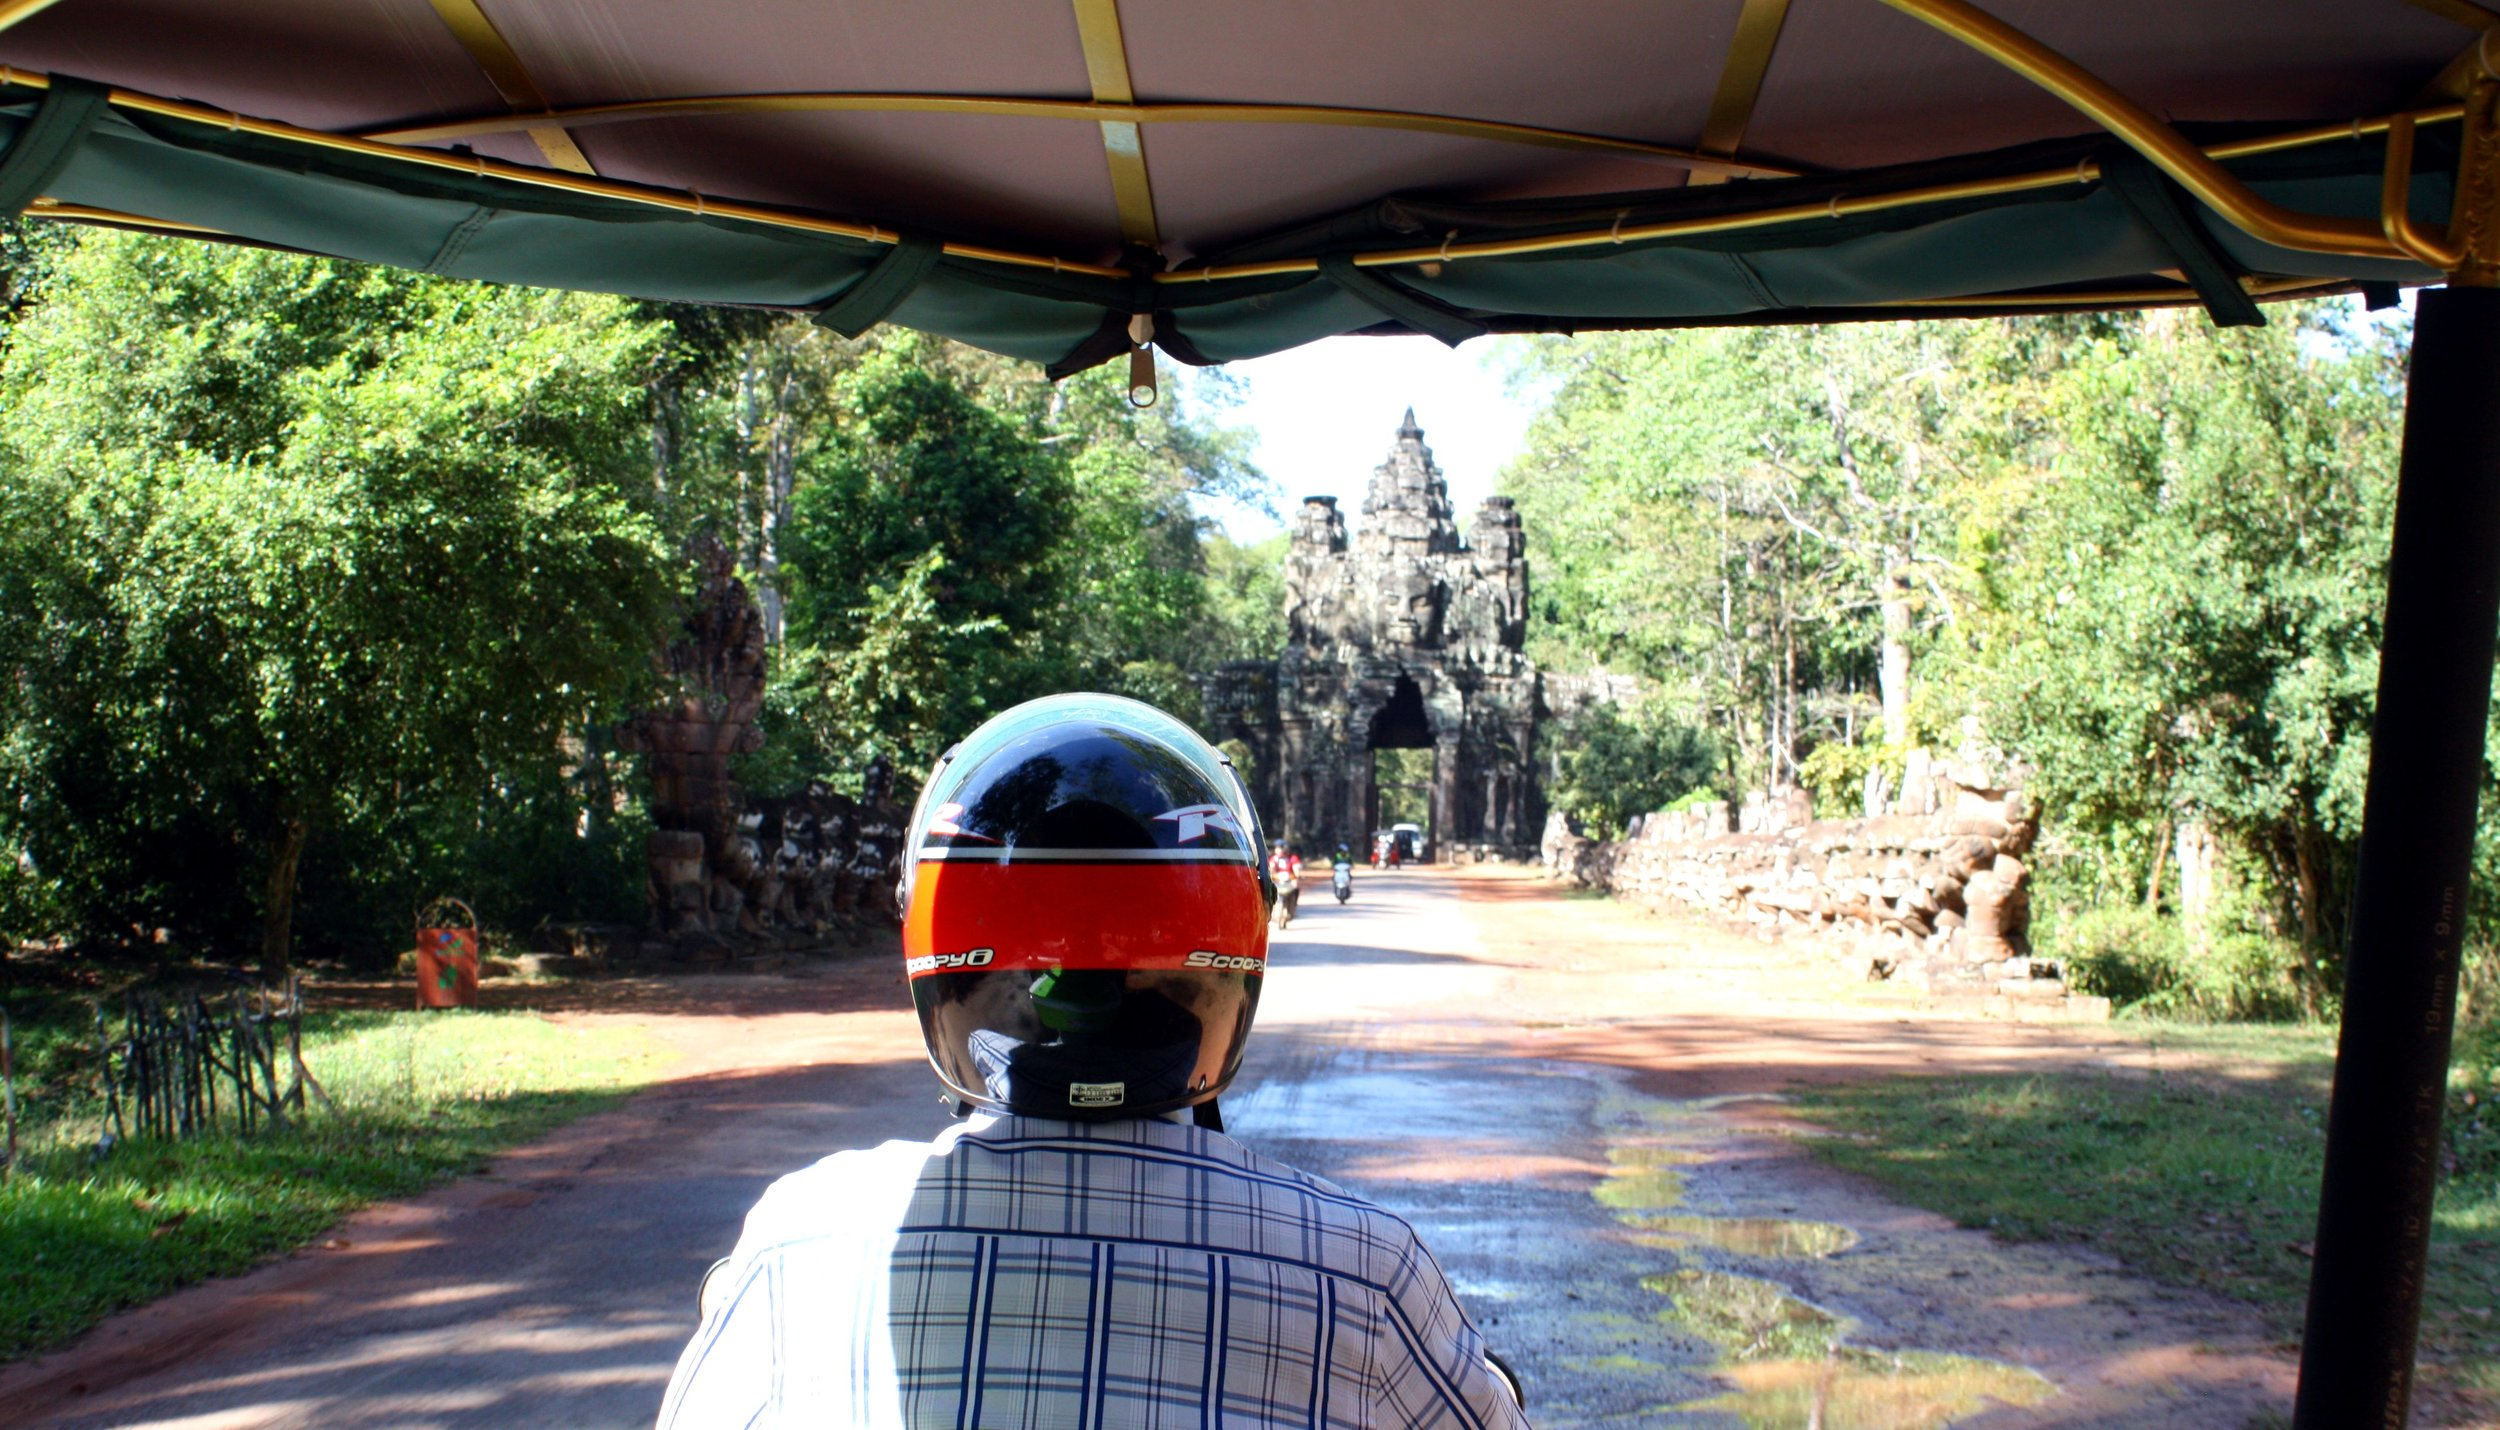 Riding in our tuk tuk through Angkor Wat.